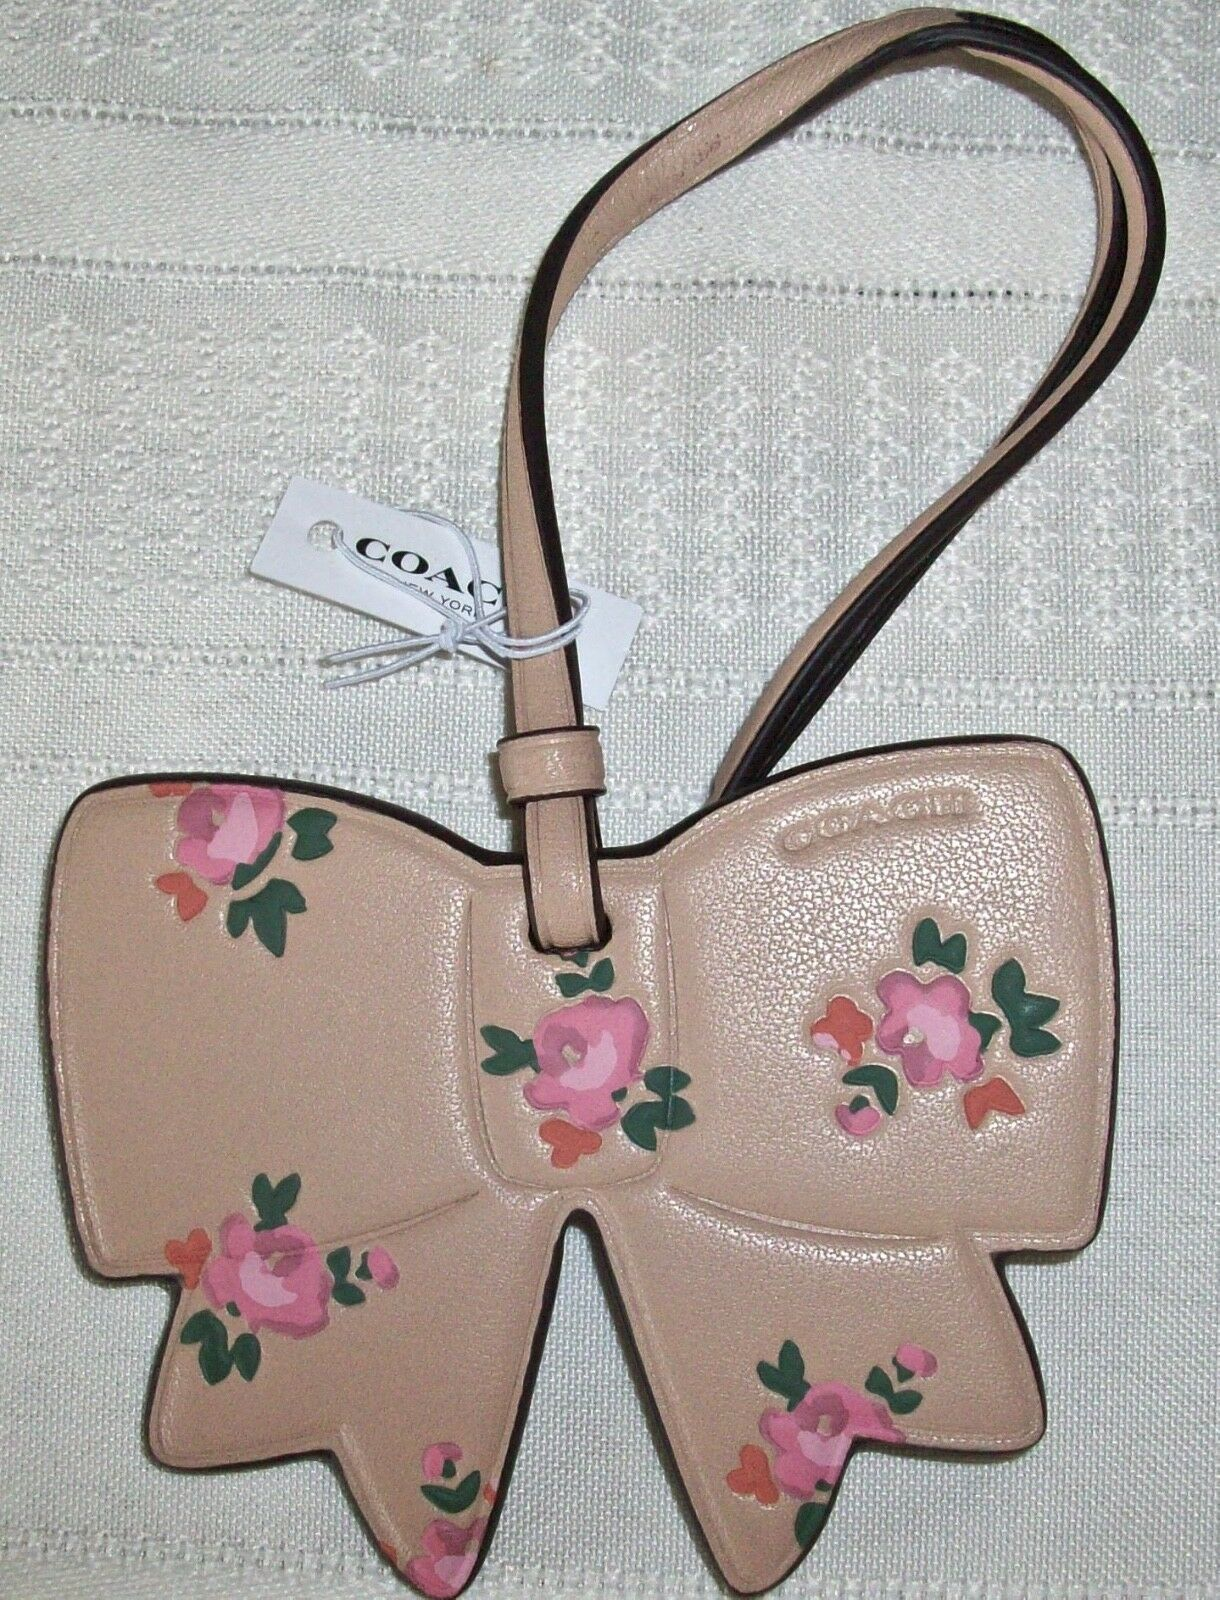 Coach Boxed Leather Printed Floral Bow Charm Ornament 27417 Beechwood image 3